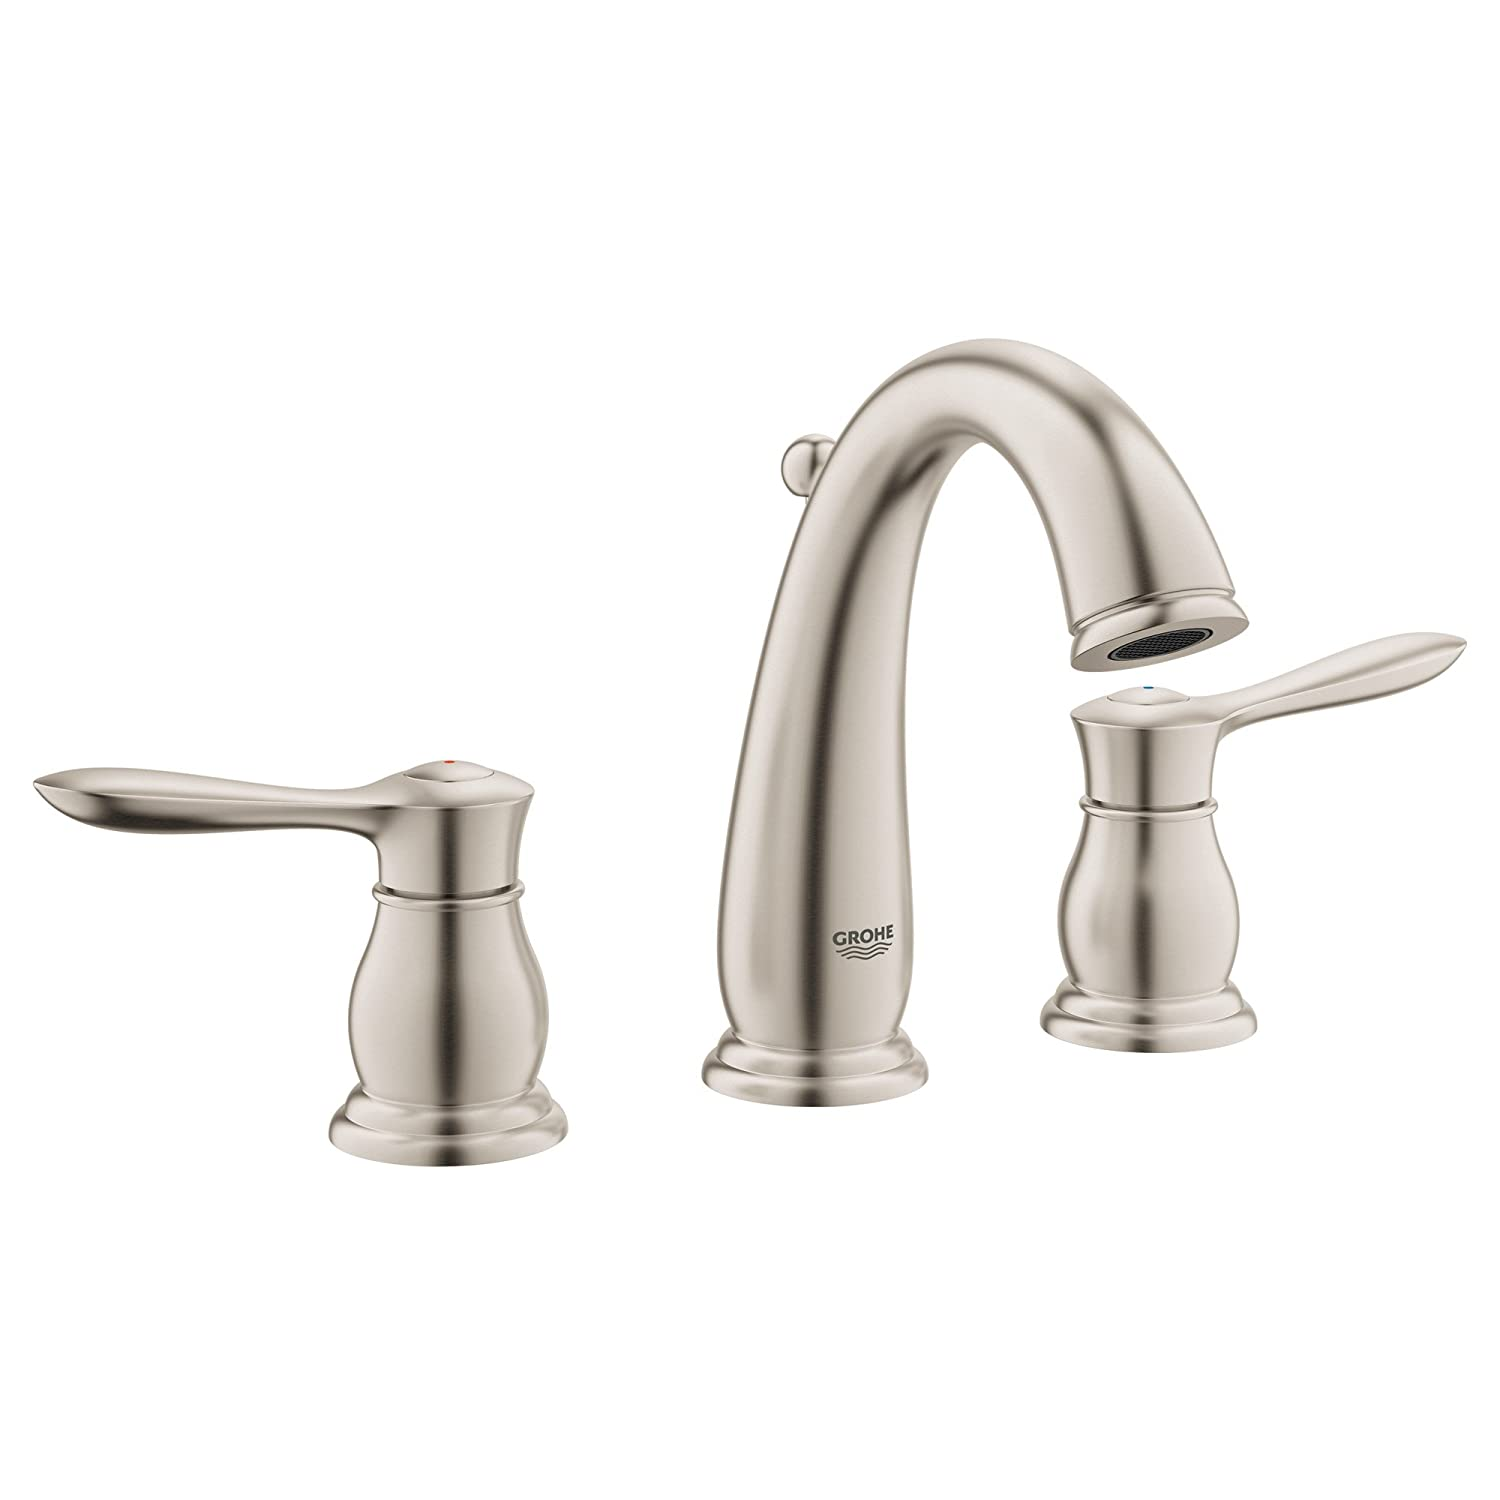 reliant control centerset american hole faucet sink bathroom single handle lavatory up faucets standard pop inch